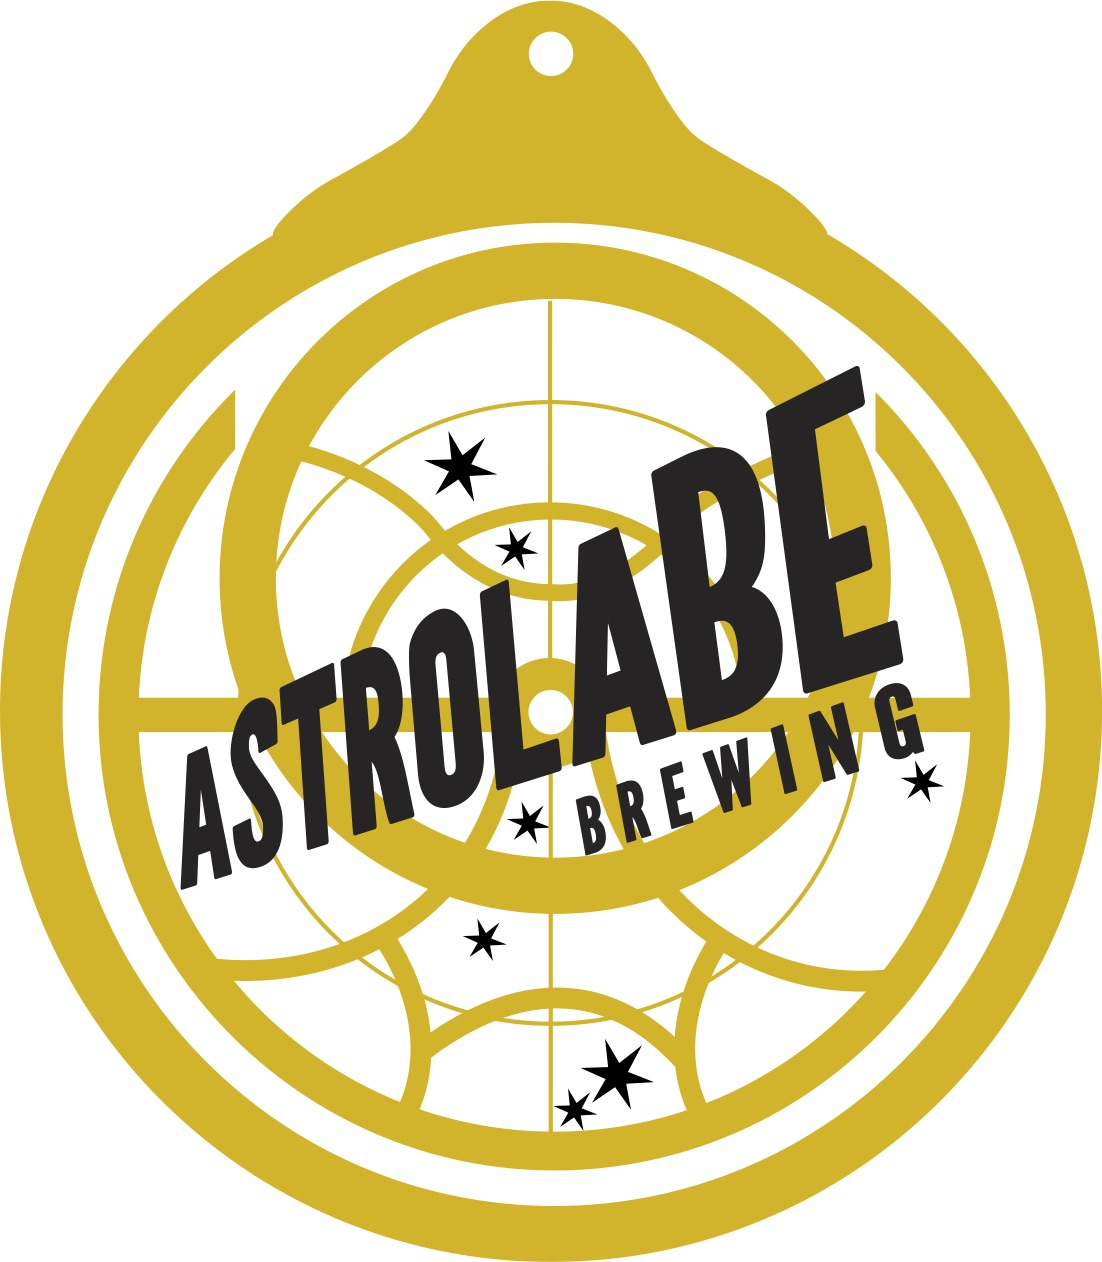 Astrolabe Brewing